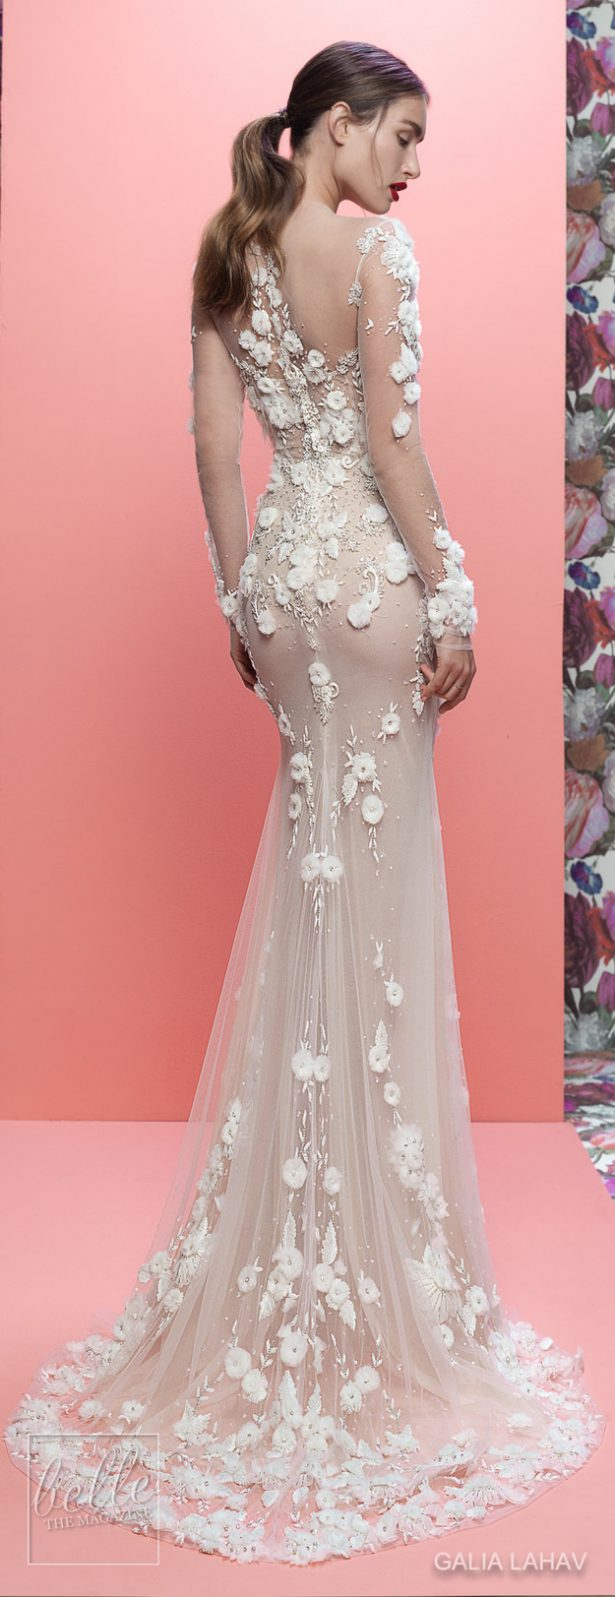 Wedding Dresses By Galia Lahav Couture Bridal Spring 2019 Collection- Queen of Hearts - Thea